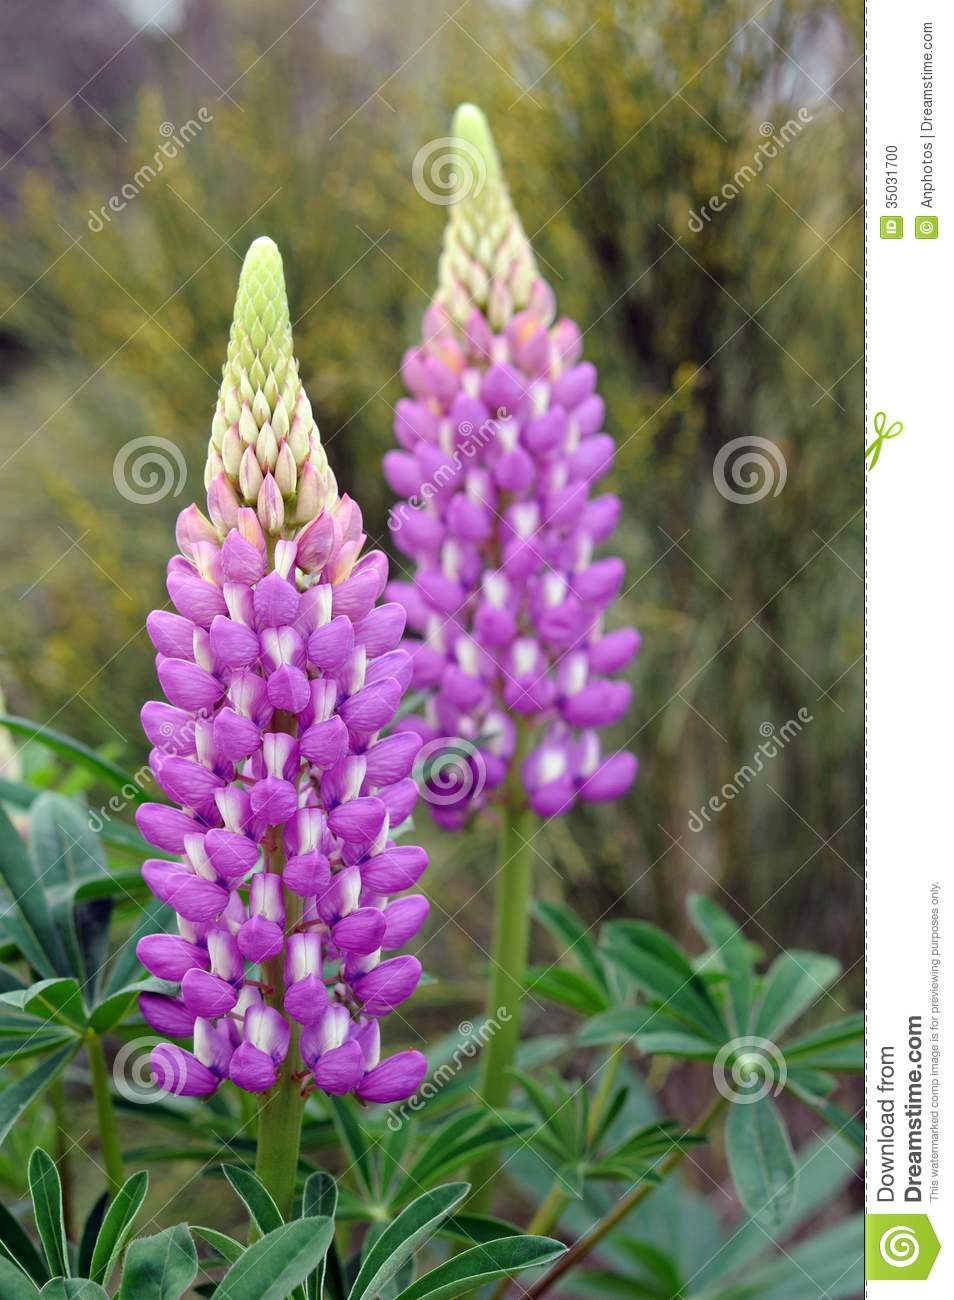 lupine flowers stock photo  image, Natural flower